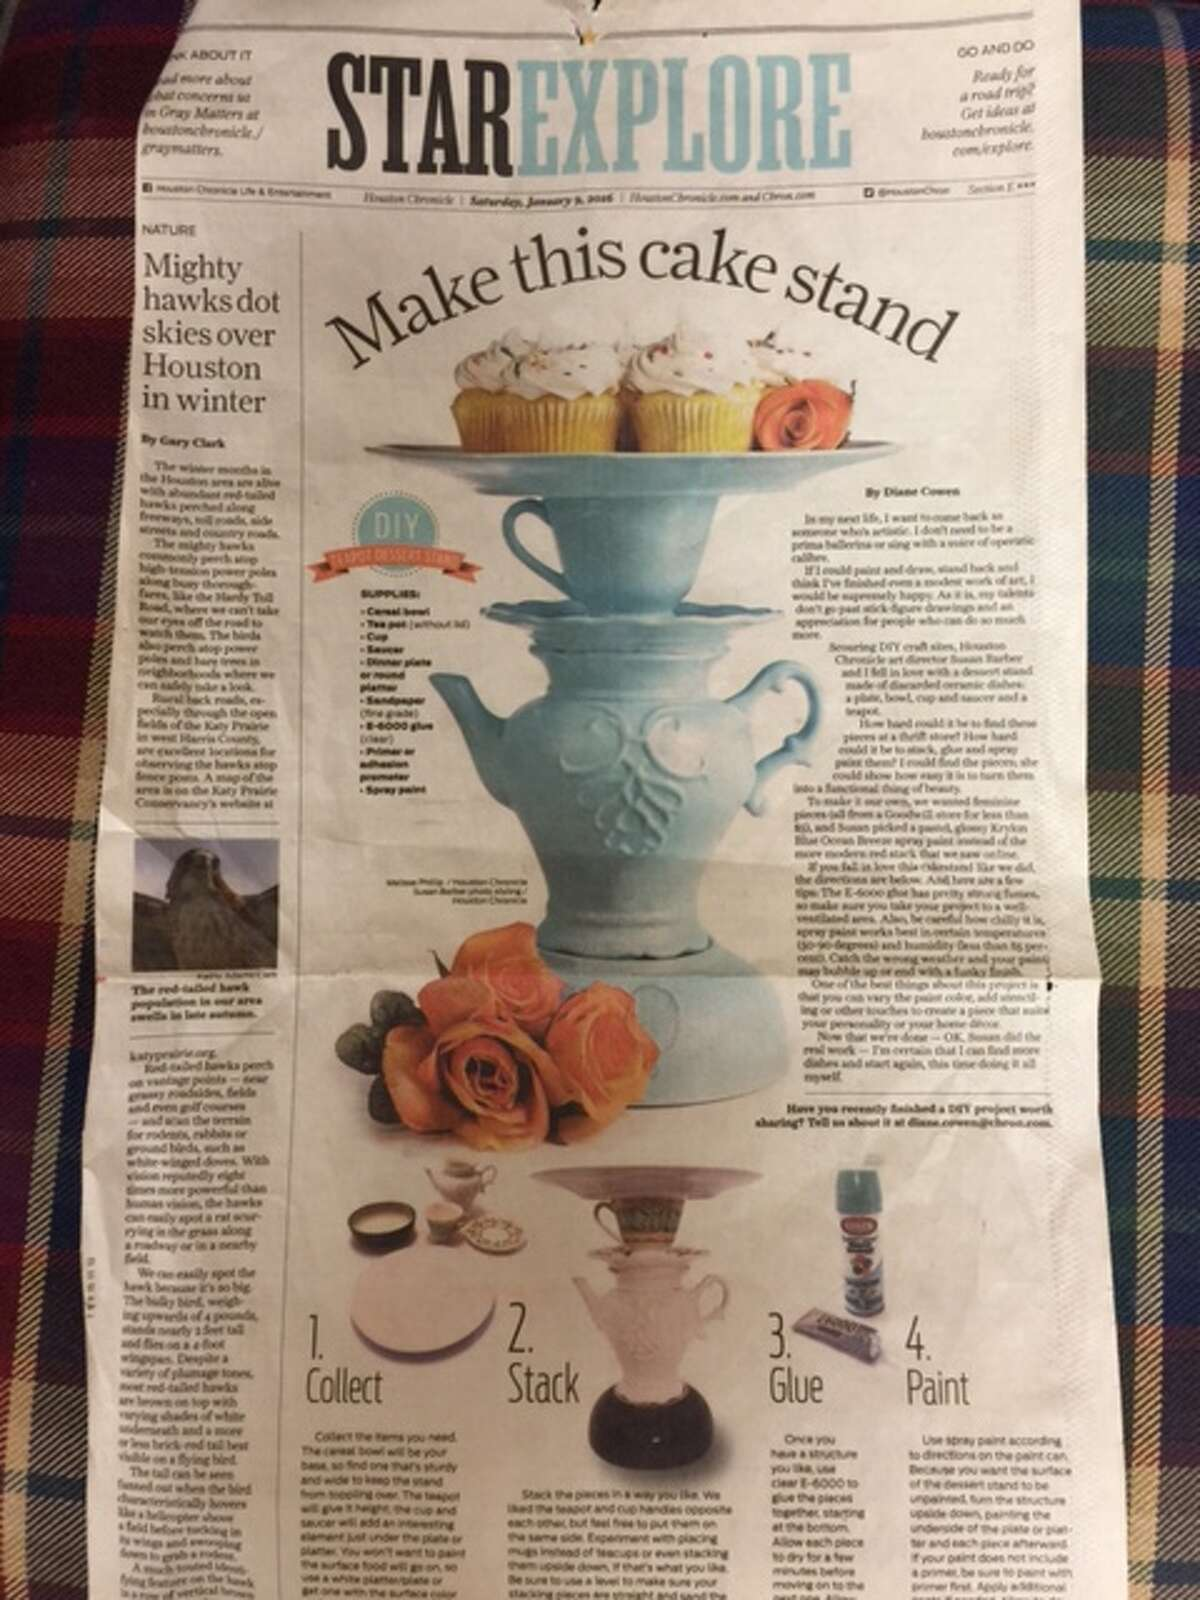 This DIY project urged readers to make a cake stand out of discarded dishes.